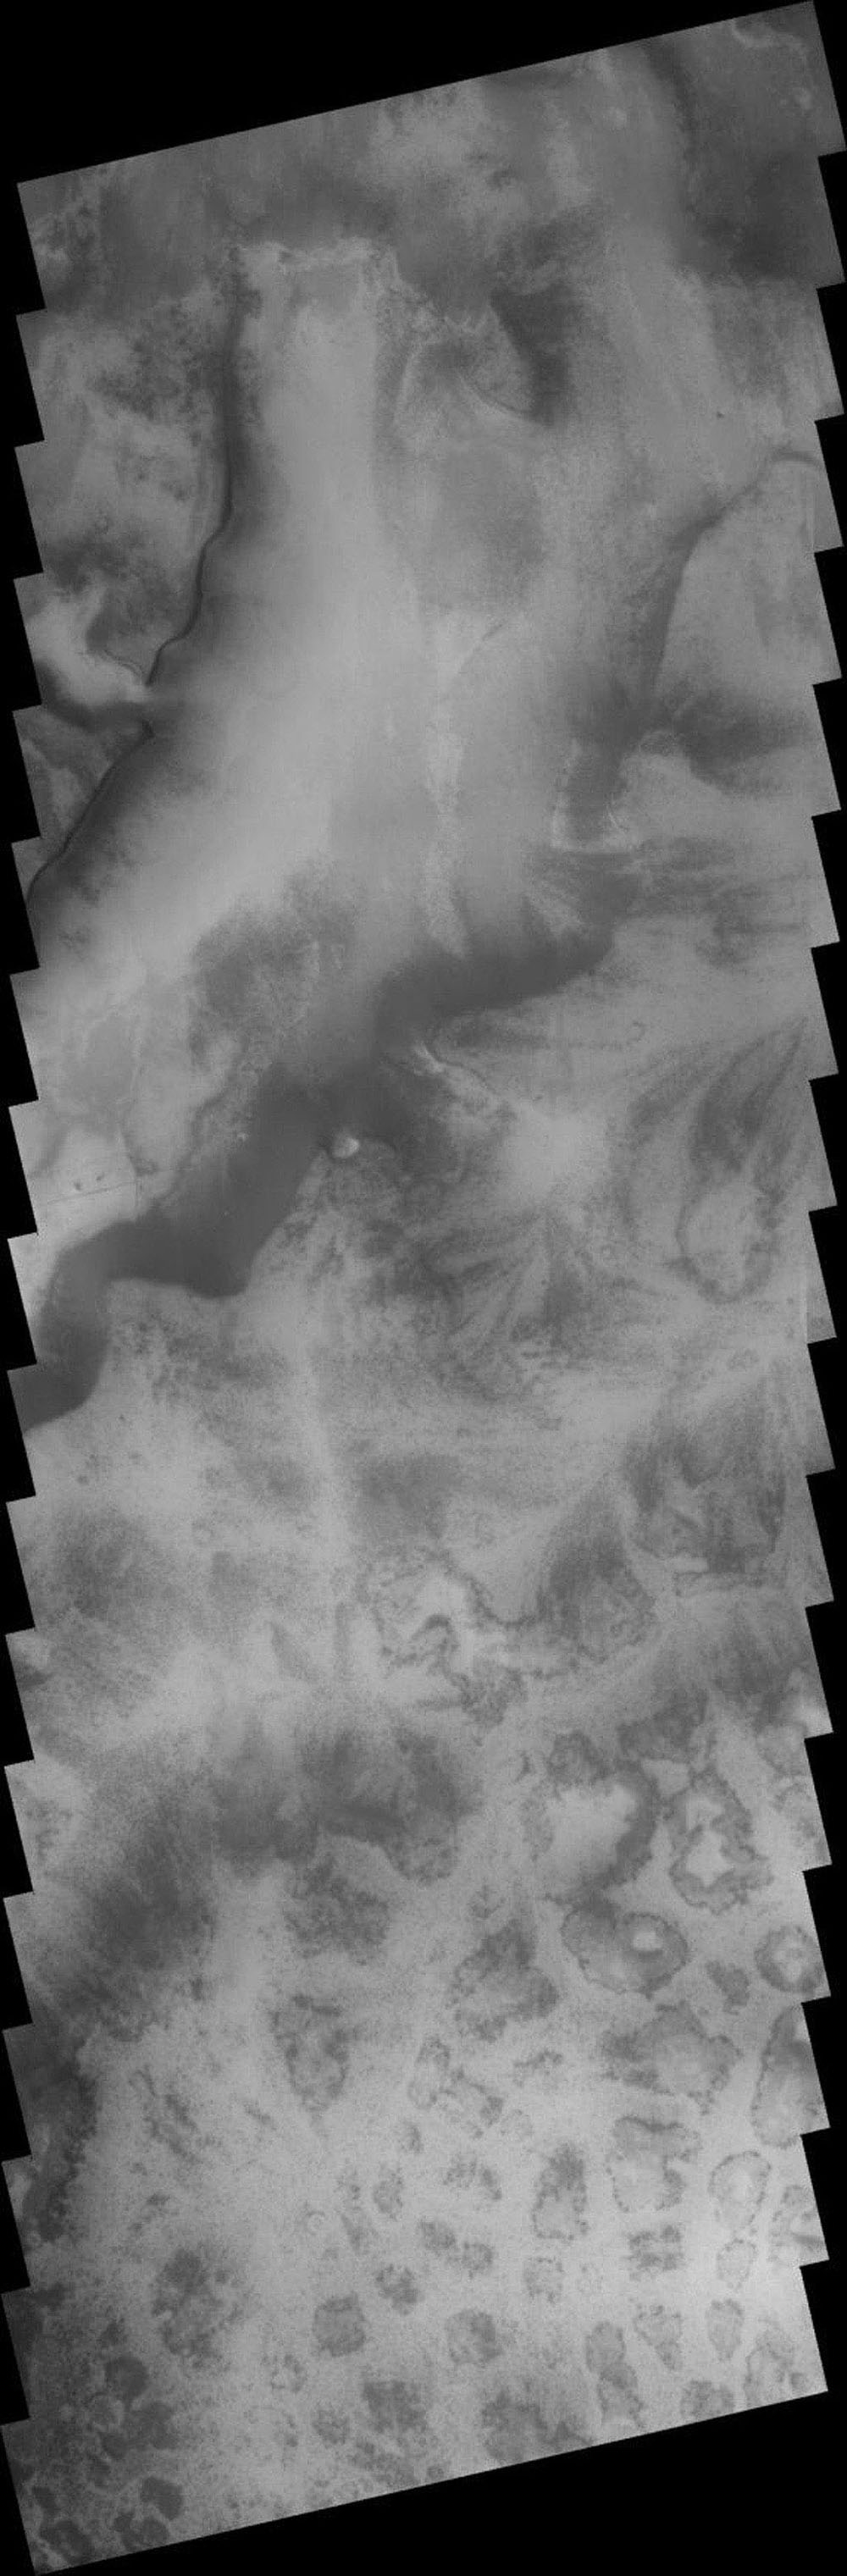 The region surrounding the south polar cap on Mars contains many different terrain types. This image from NASA's 2001 Mars Odyssey spacecraft shows both etched terrain and a region of 'mounds.'